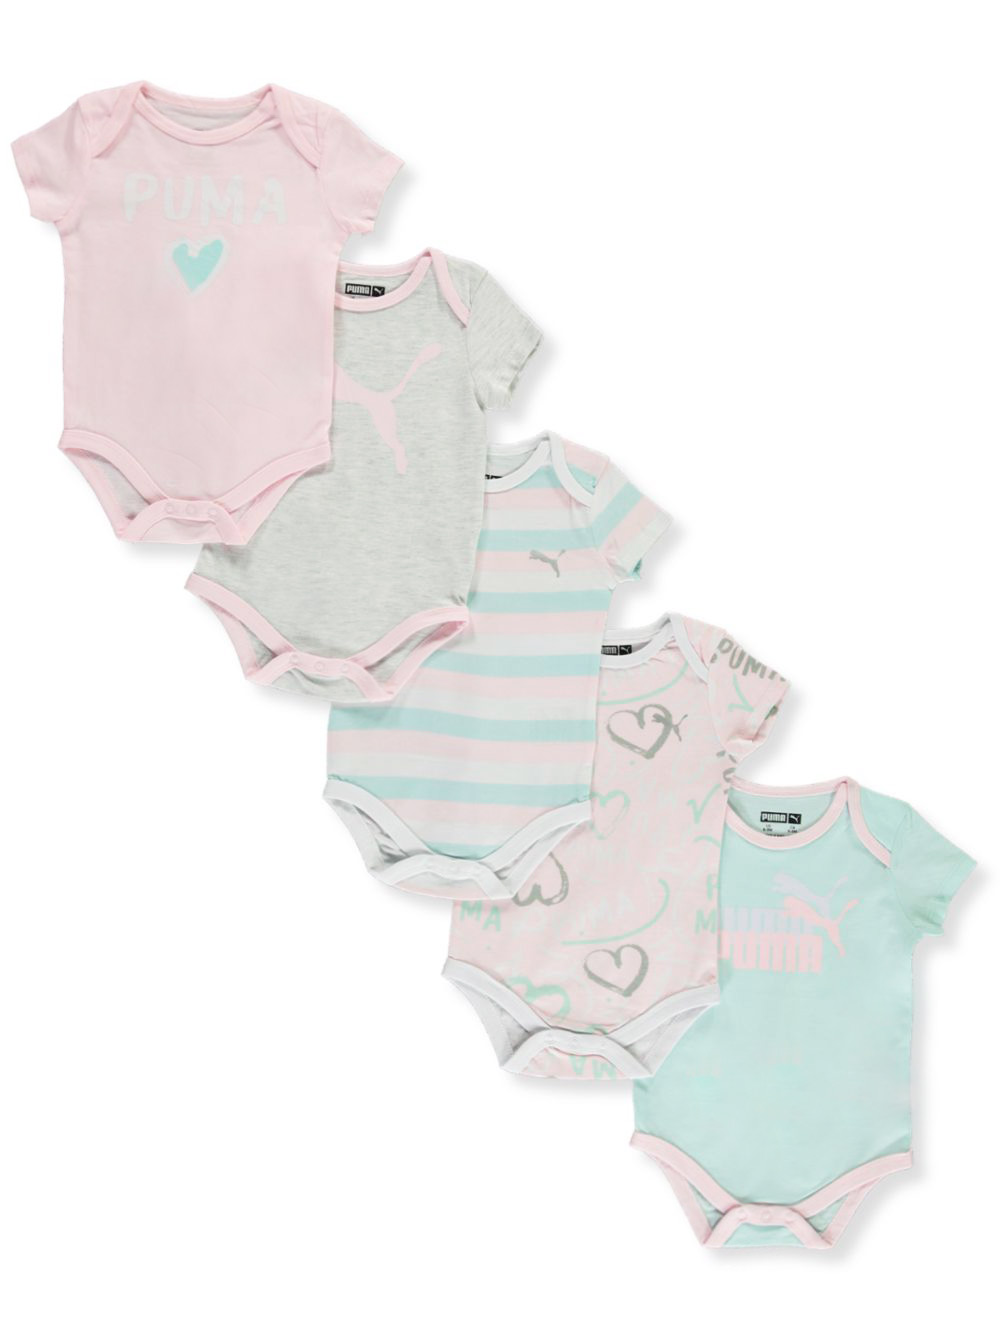 Girls White Heather Bodysuits